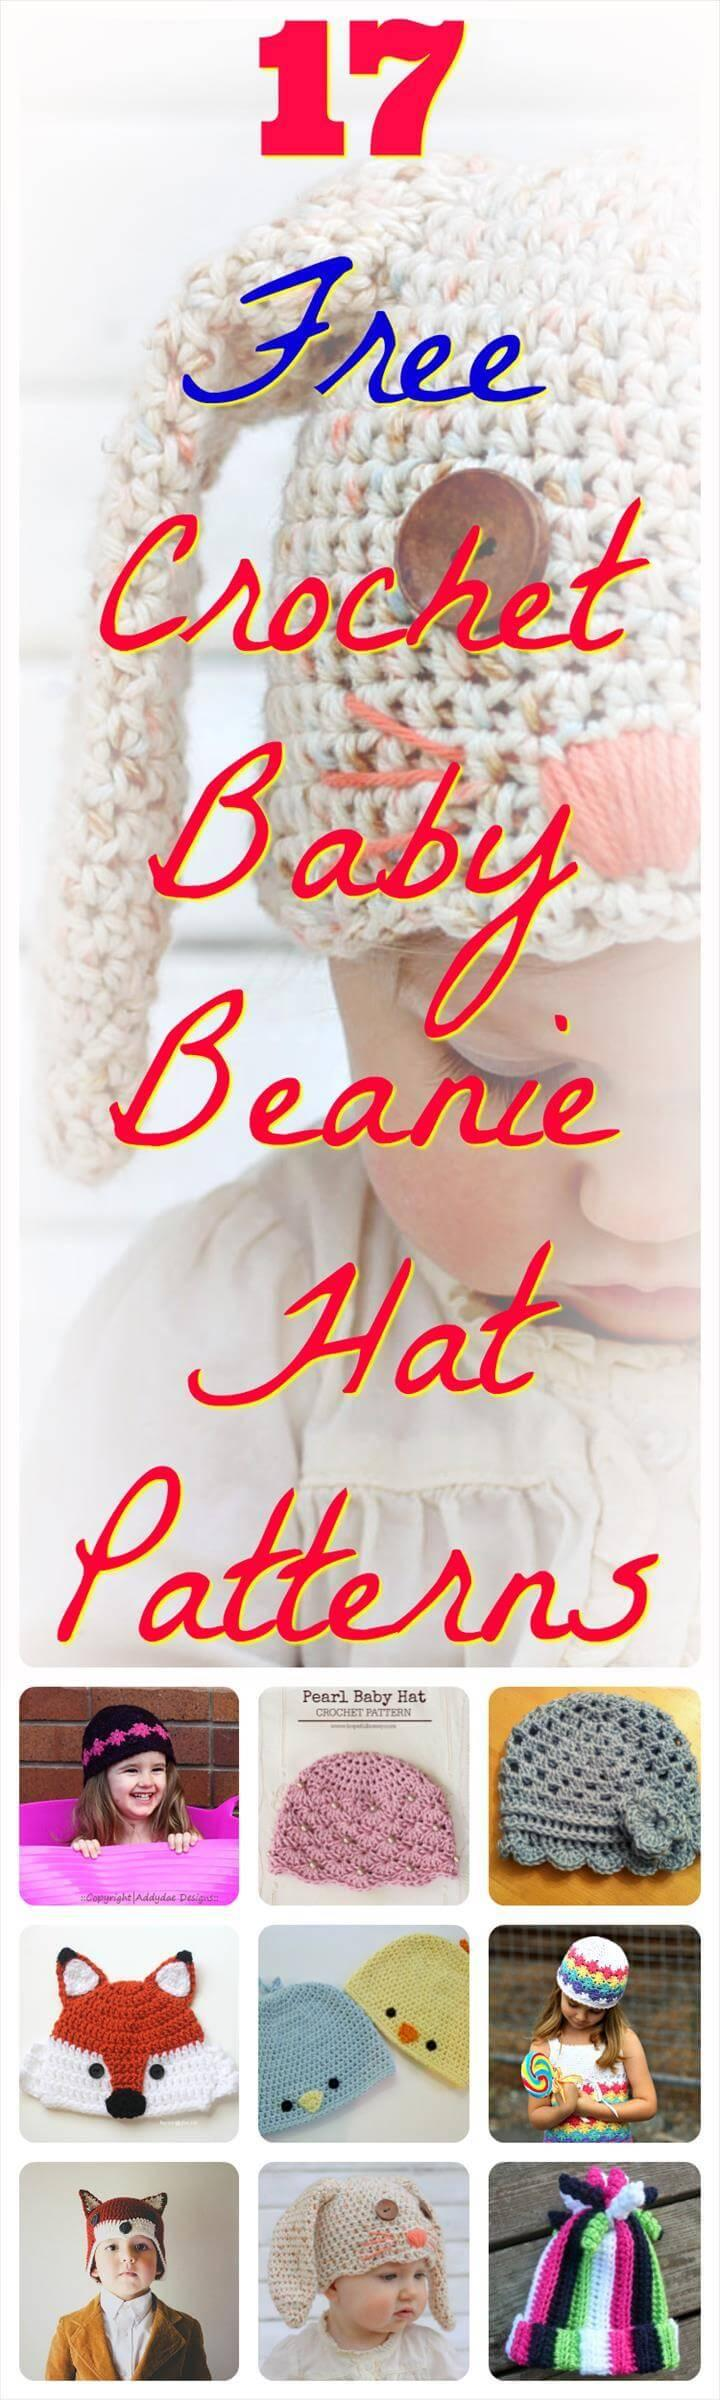 Free Crochet Baby Beanie Hat Patterns